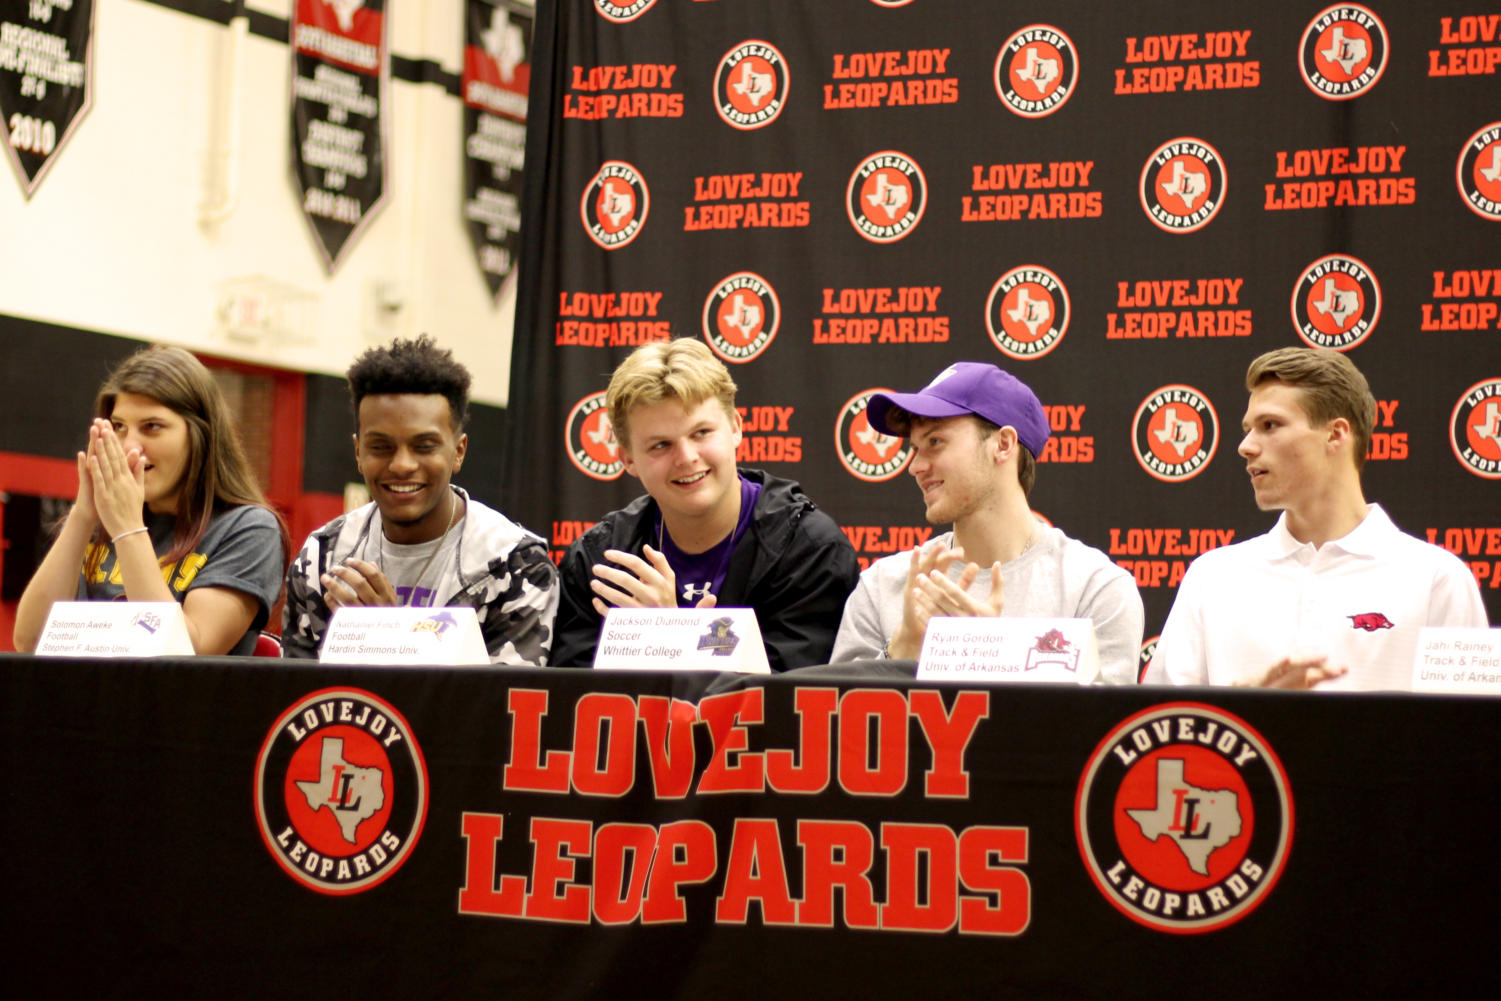 +Athletes+Alex++%2C+Solomon+Awoke%2C+Nathaniel+Finch%2C+Jackson+Diamond%2C+and+Ryan+Gordon+after+they+signed+their+papers+for+their+college.+There+was+a+mix+of+colleges+and+sports+at+the+signing+event+on+April+17.%0A